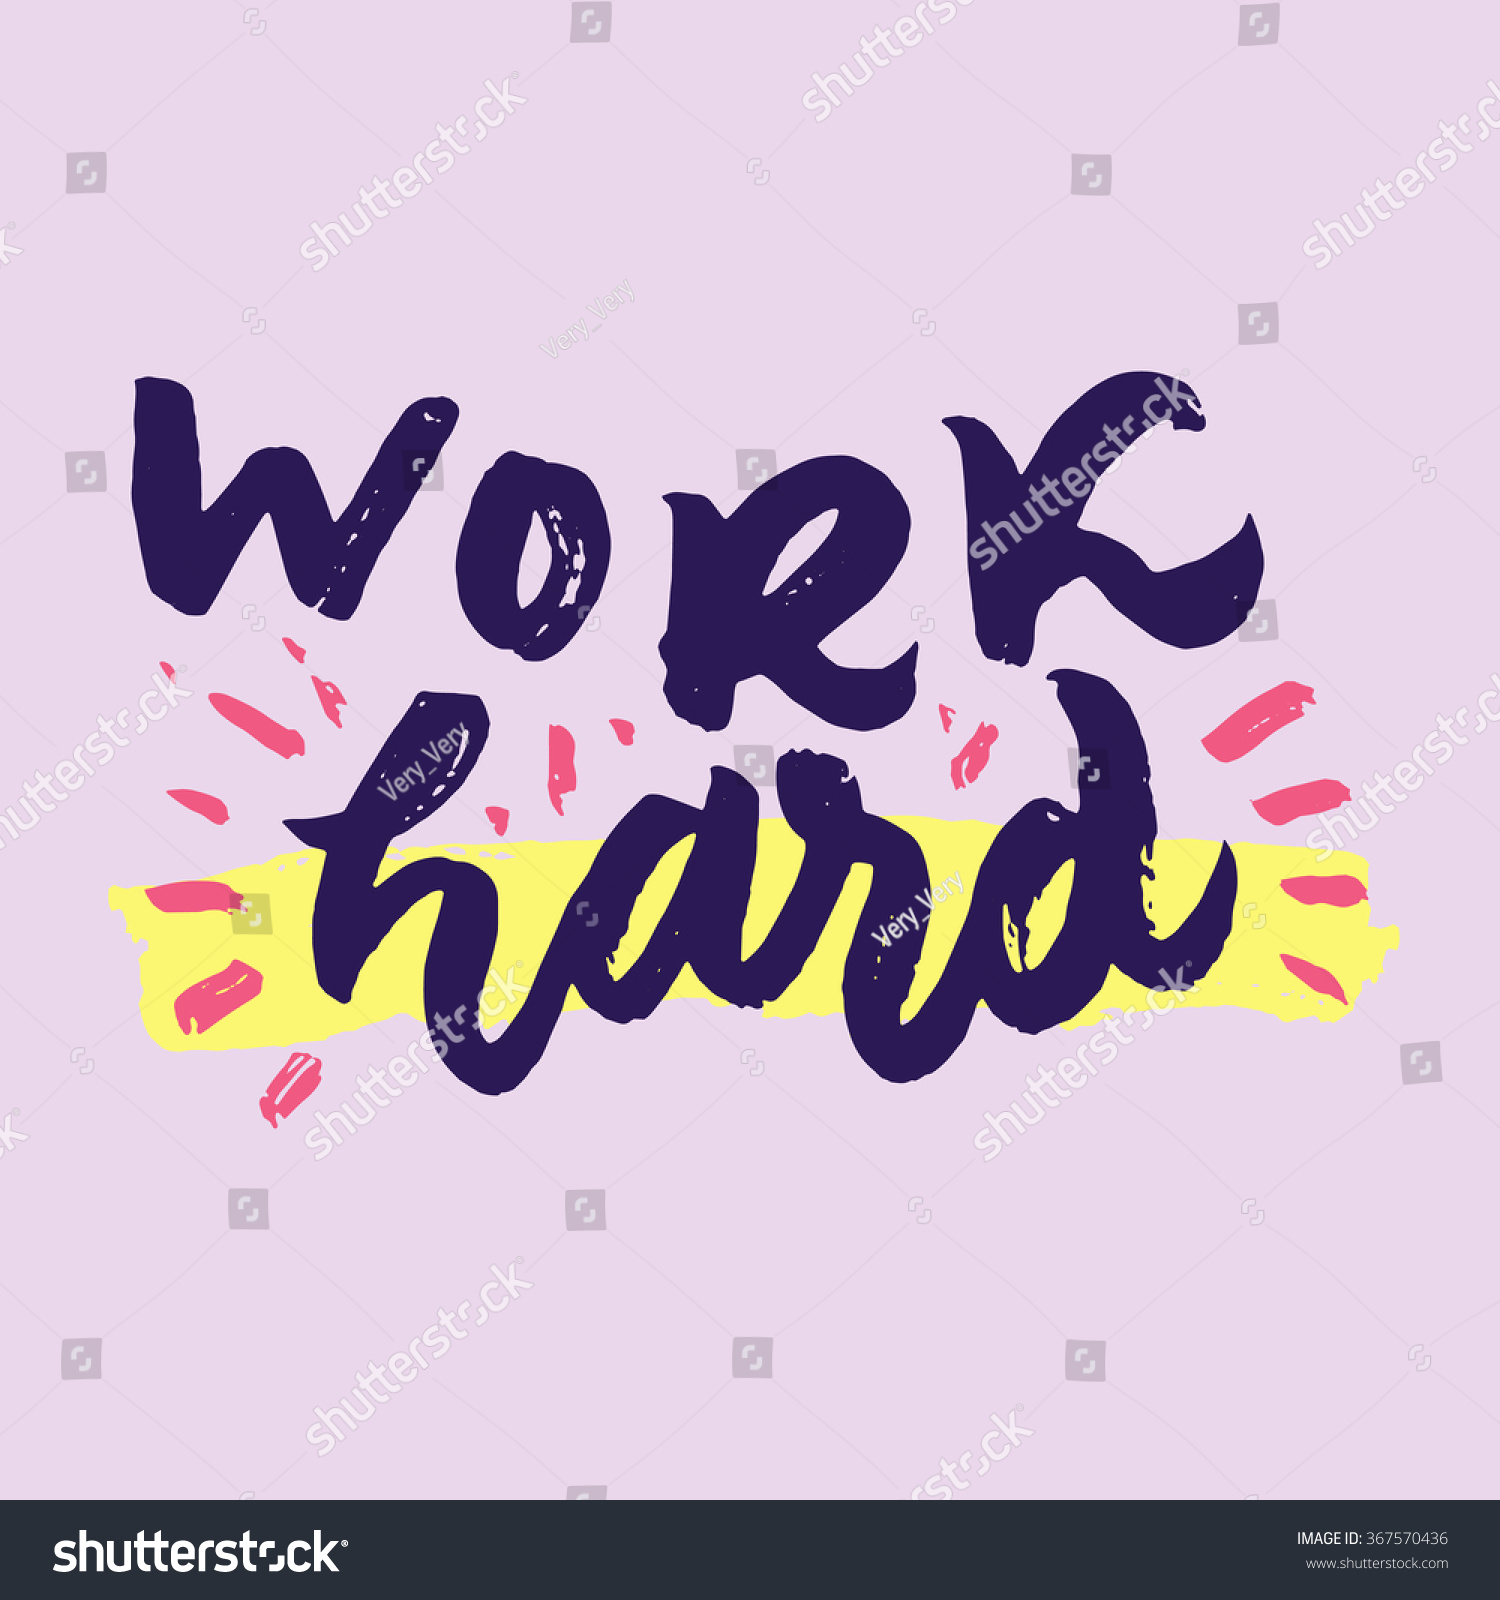 Motivational Phrases Work Hard Inspirational Motivational Quotes Hand Painted Stock